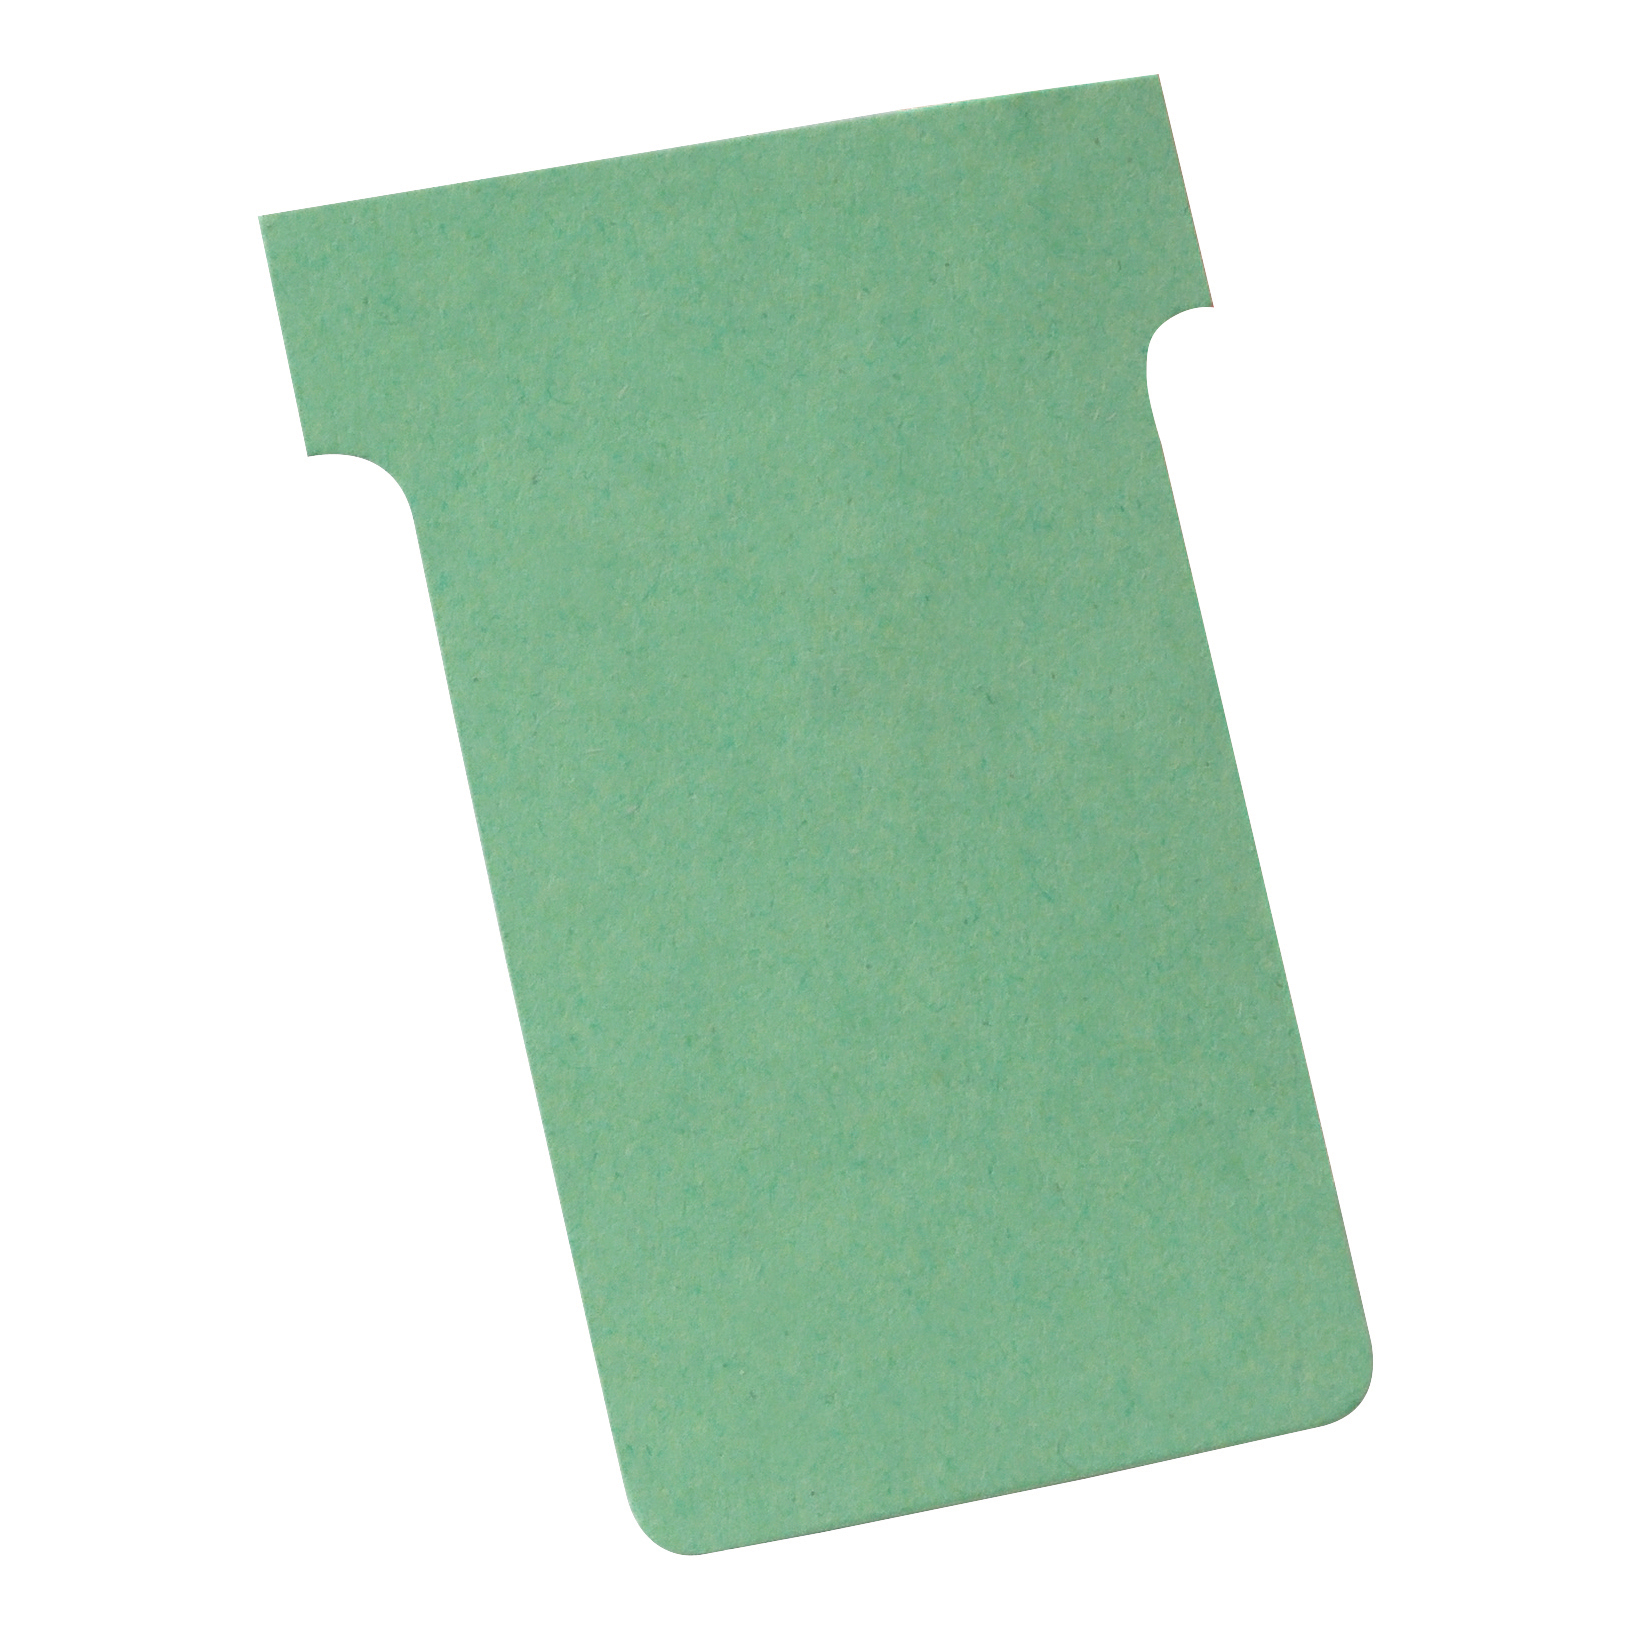 T Cards Nobo T-Cards 160gsm Tab Top 15mm W60x Bottom W48.5x Full H85mm Size 2 Green Ref 32938902 Pack 100